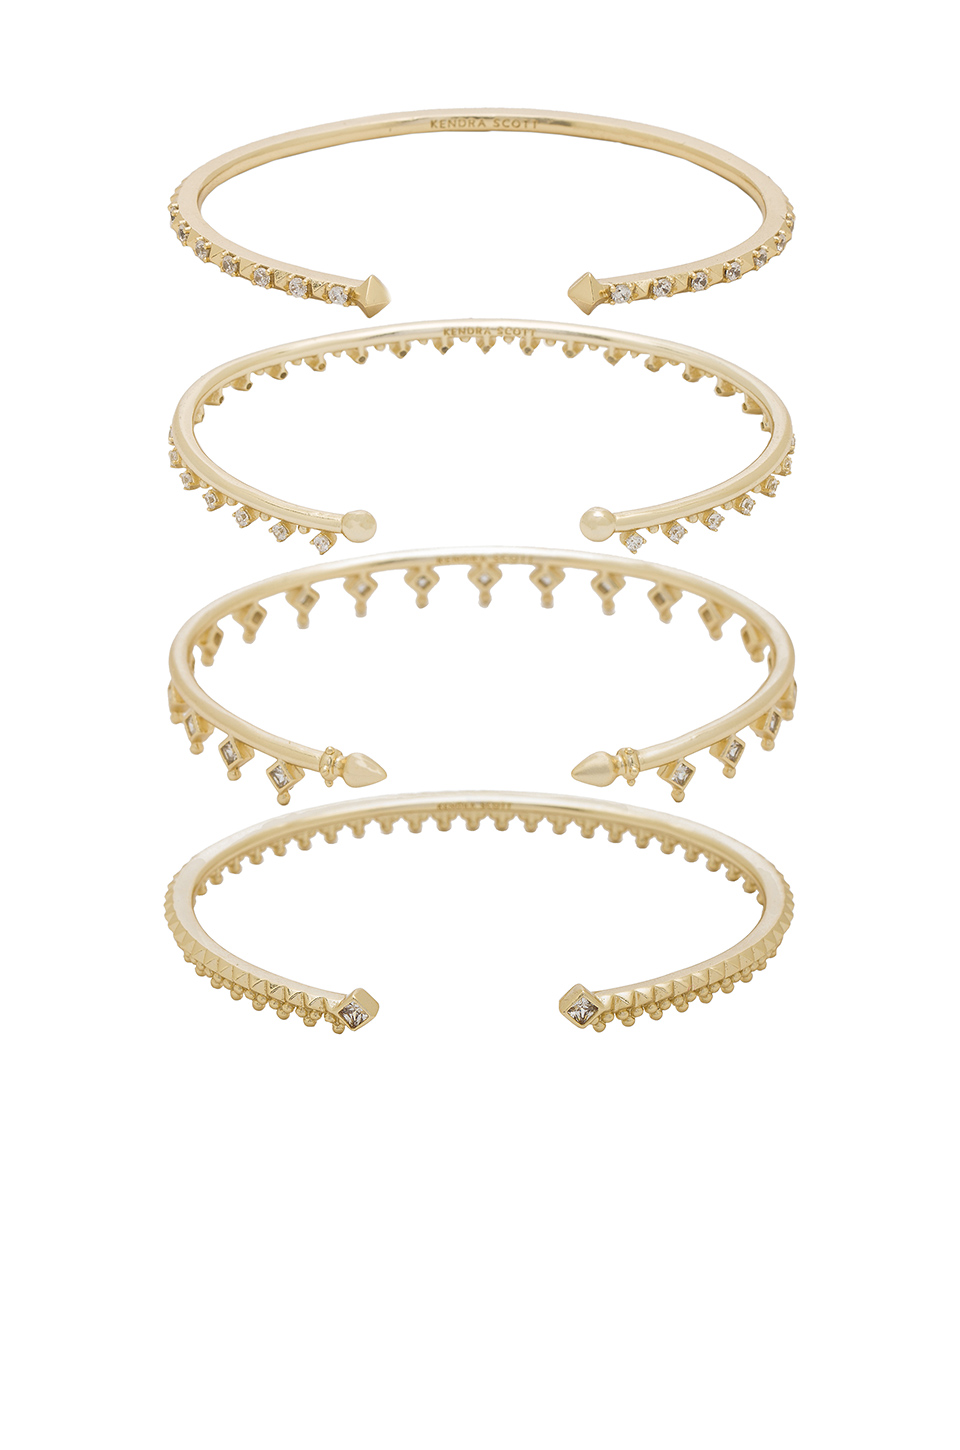 Kendra Scott Delphine Pinch Bracelet Set of 4 in Gold with White Cubic Zirconia